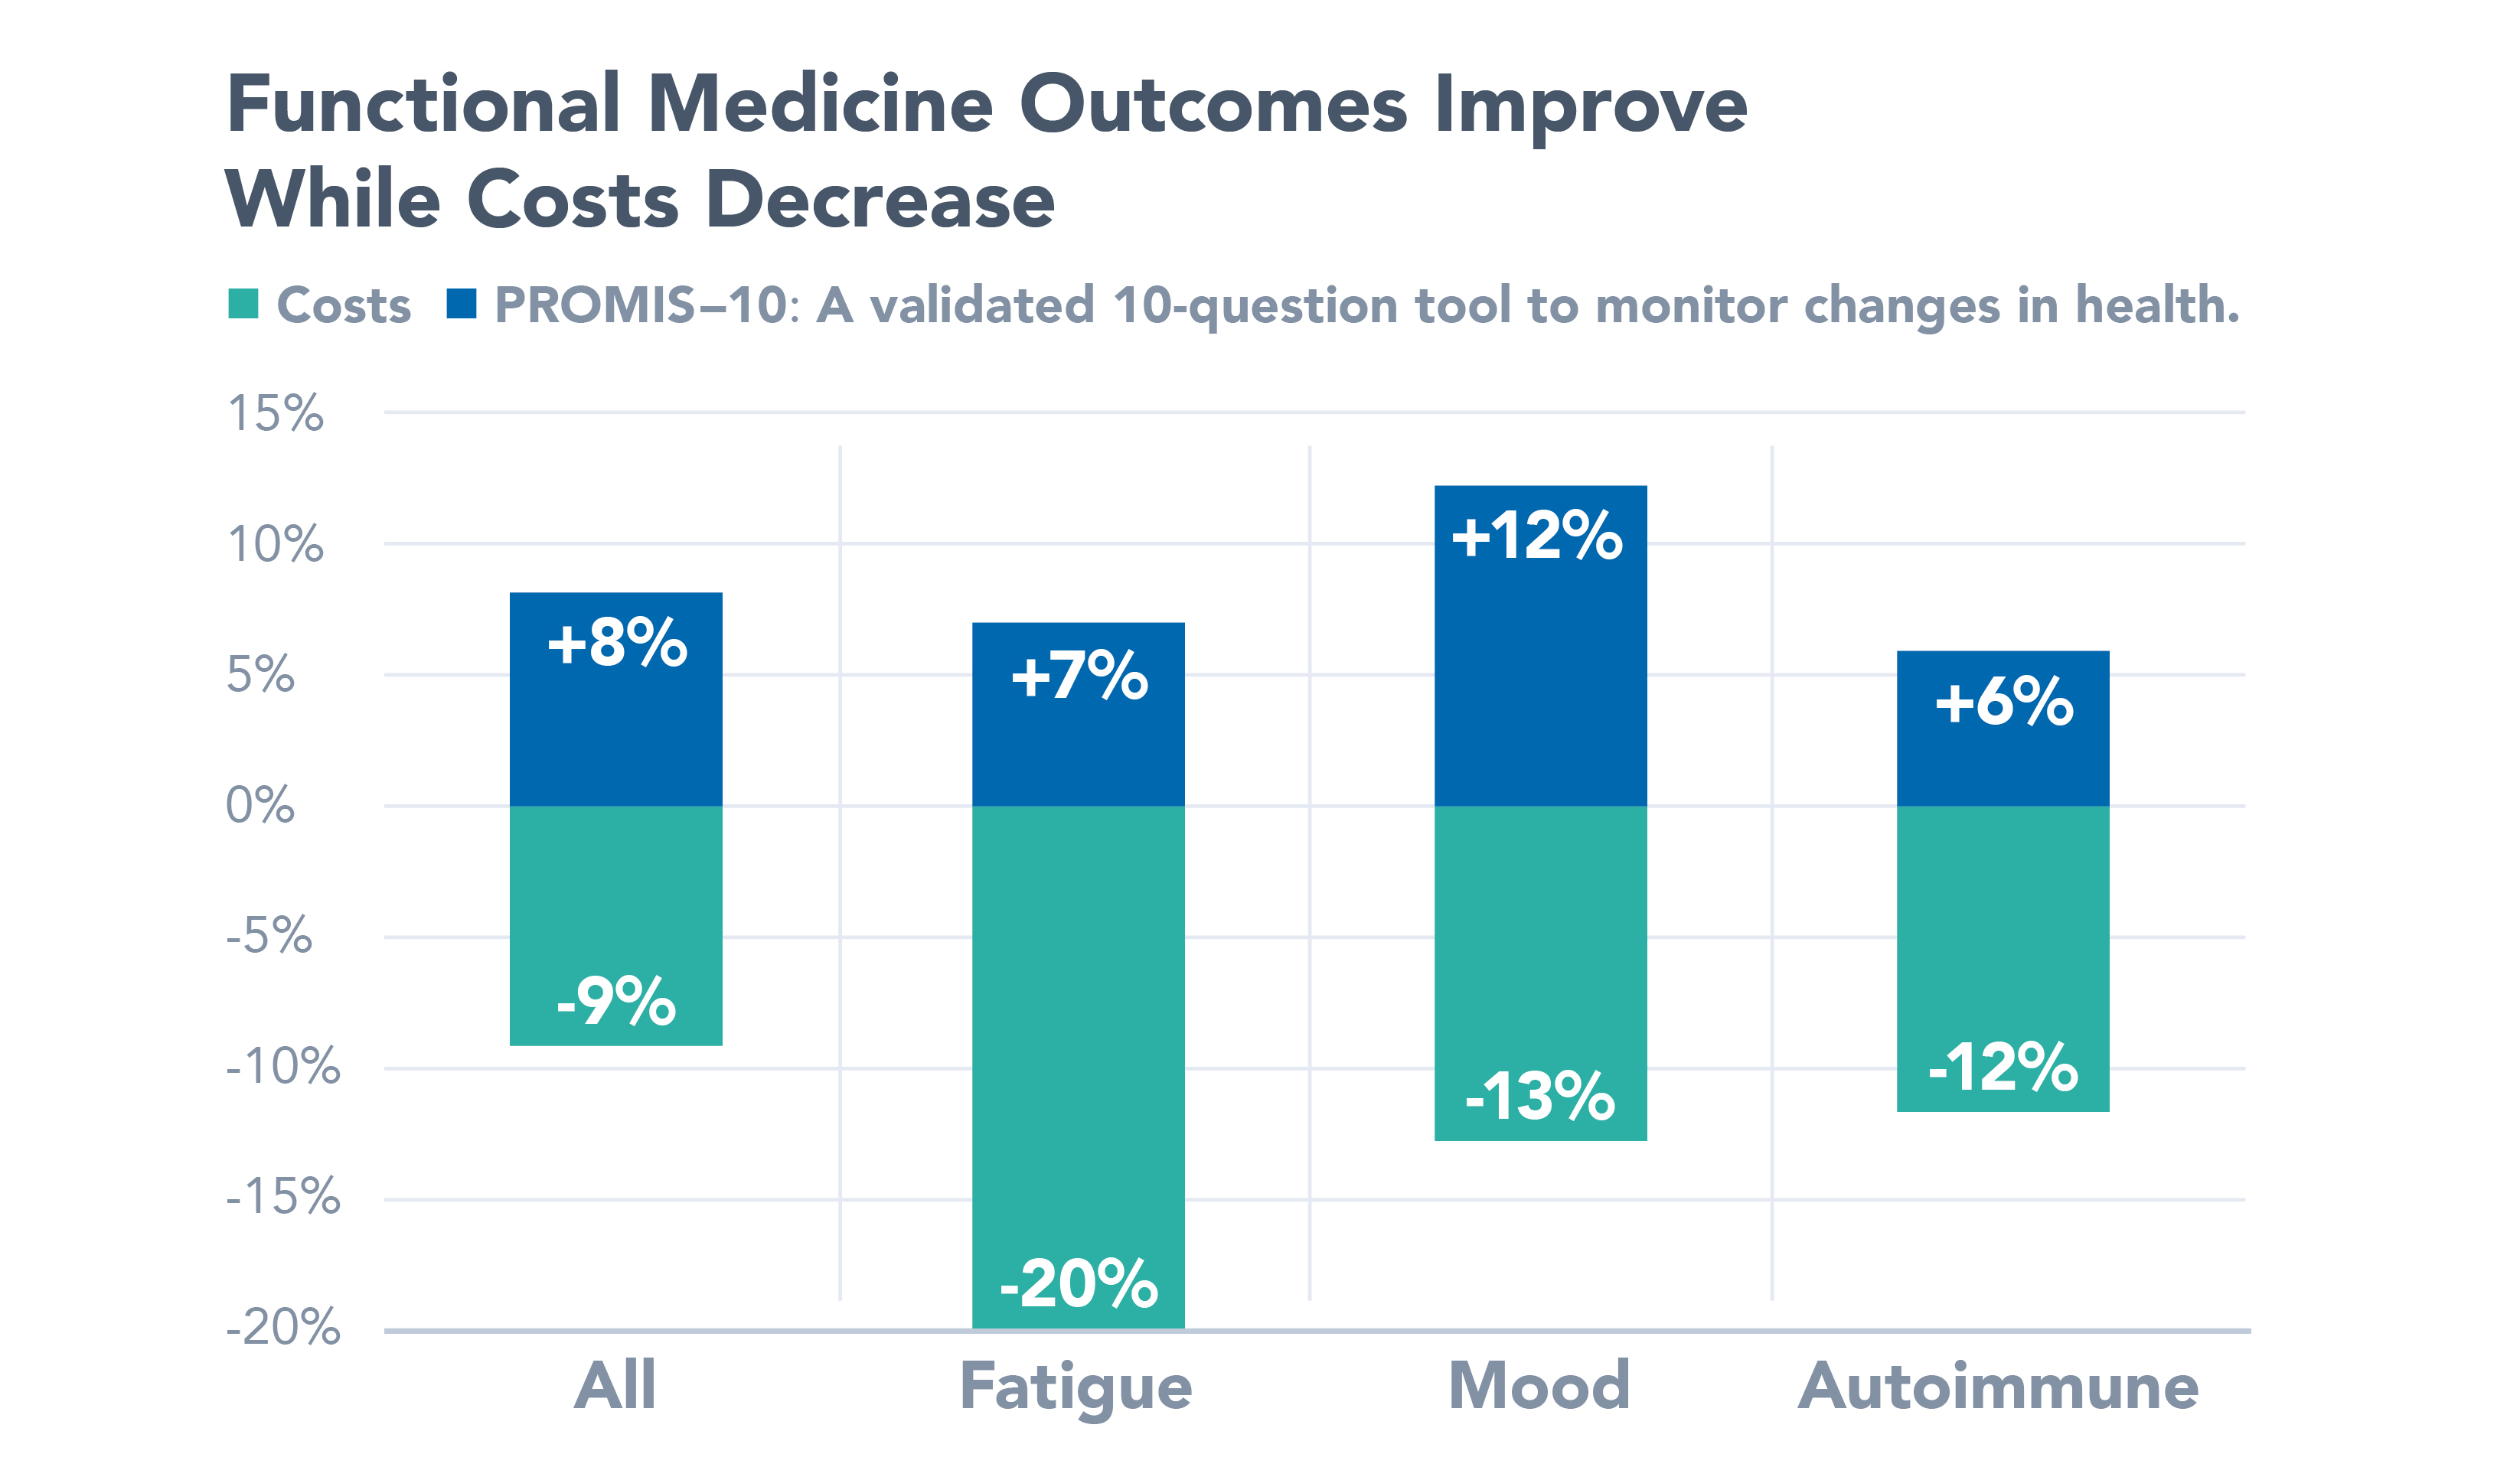 Functional Medicine Outcomes Improve While Costs Decrease